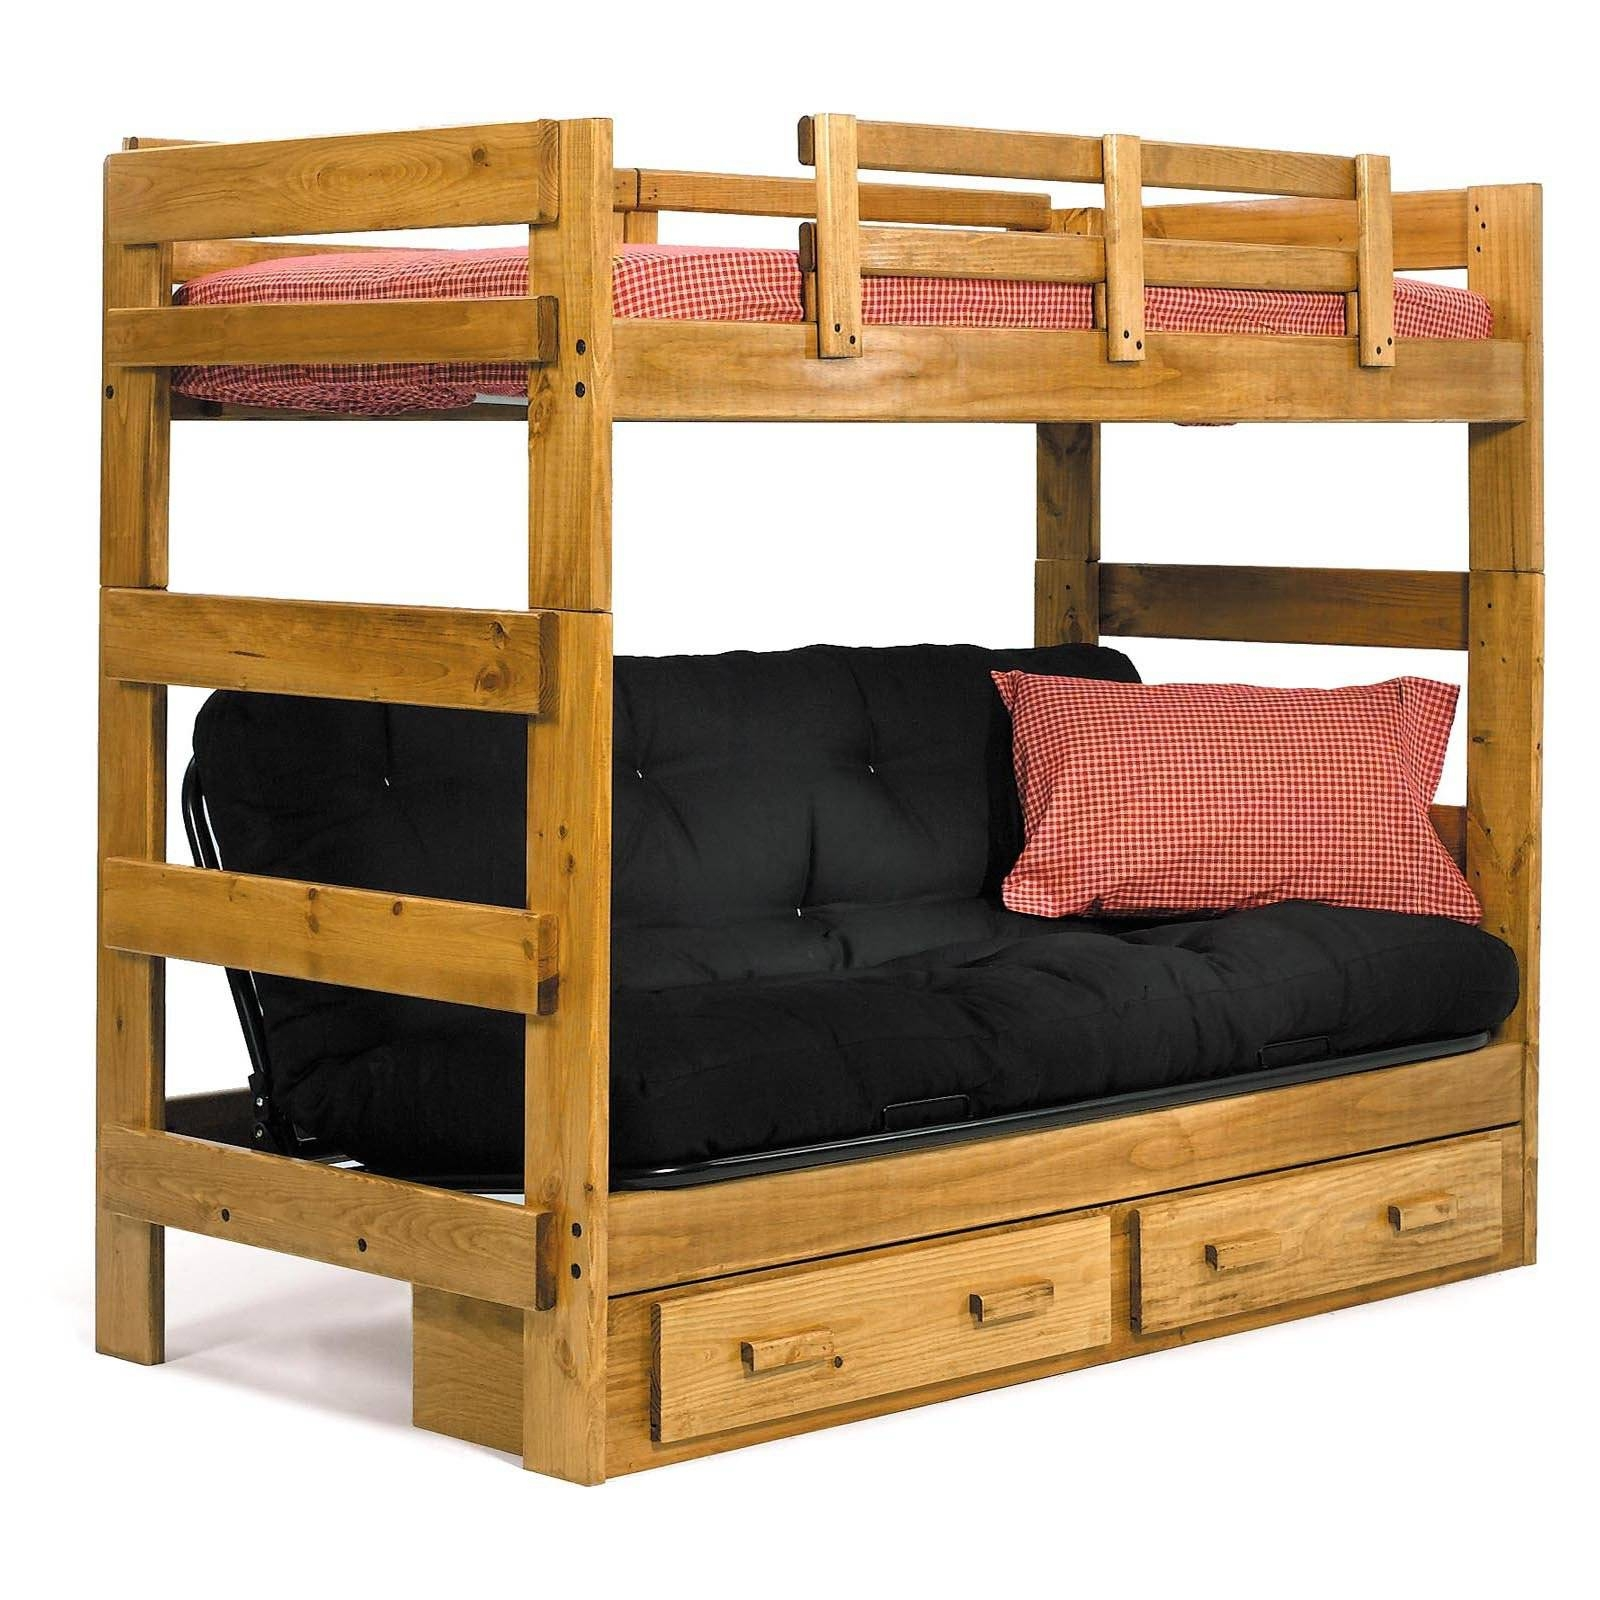 Loft Bunk Bed With Futon And Drawers Underneath - Decofurnish with regard to Bunk Bed With Sofas Underneath (Image 12 of 15)